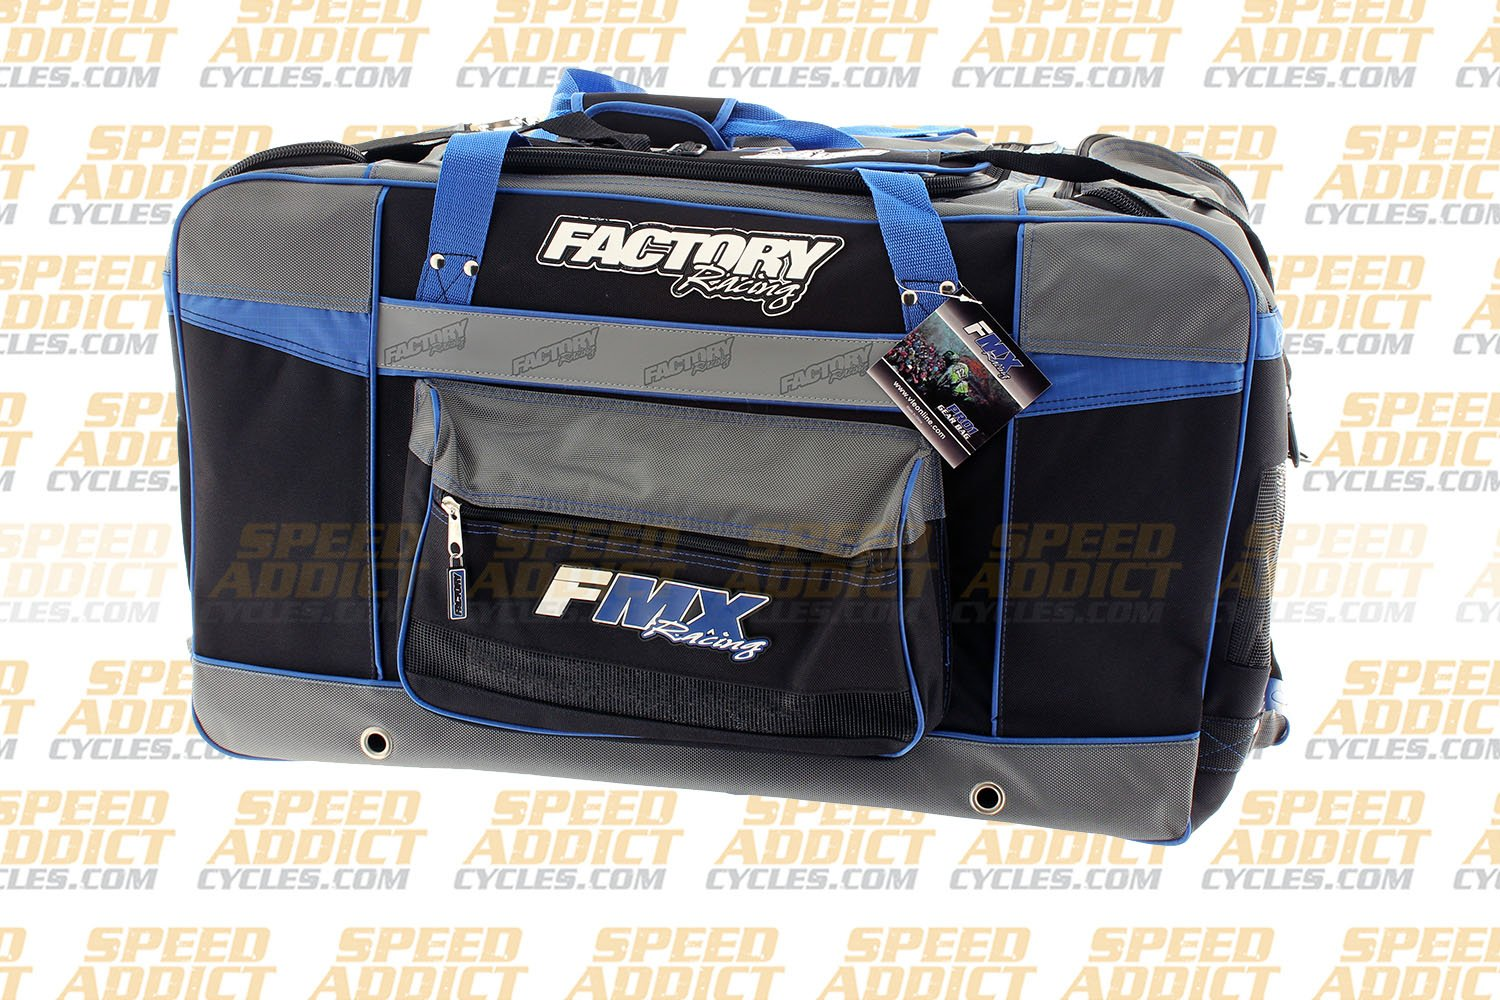 Factory FMX Motorcross Gear Bag XLarge Blue by Factory Racing (Image #2)